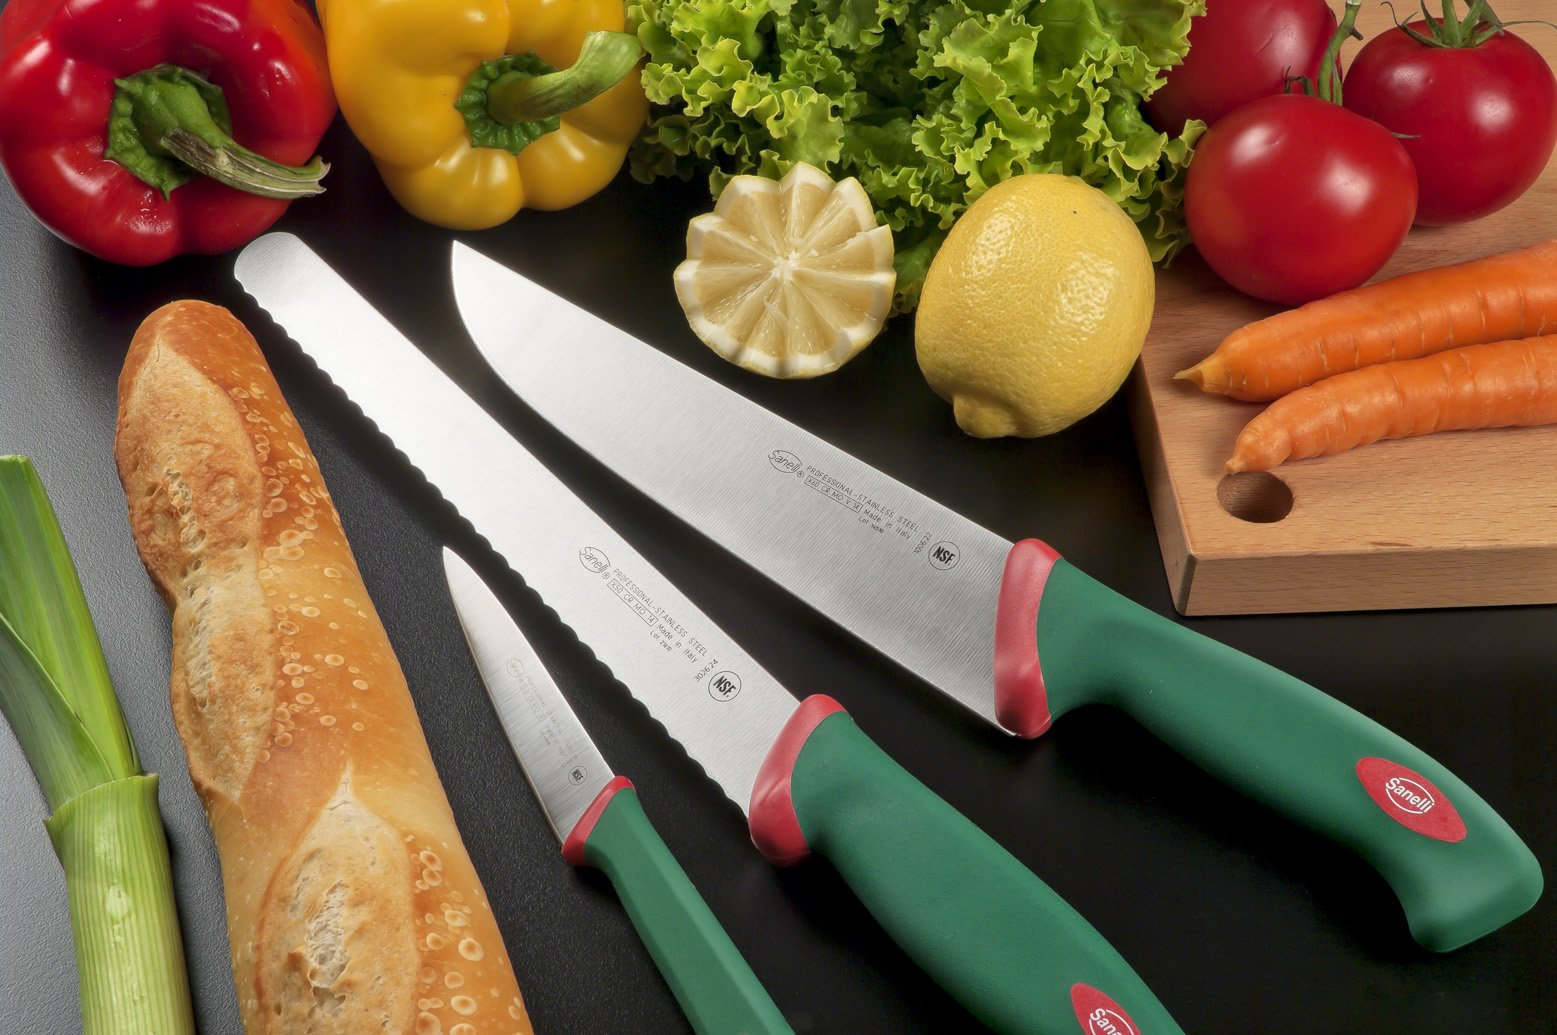 """Sanelli Premana Professional Bread Knife, 24cm/9.44"""", Green 2 The exclusive ergonomic handle design is the result of special studies carried out at qualified University Institutes to ensure the best balance and grip The handle is perfectly balanced with the blade; Semi-rigid serrated knife, for slicing bread, cakes, pizza The material used is non-toxic and complies with the European rules; Made in Italy"""